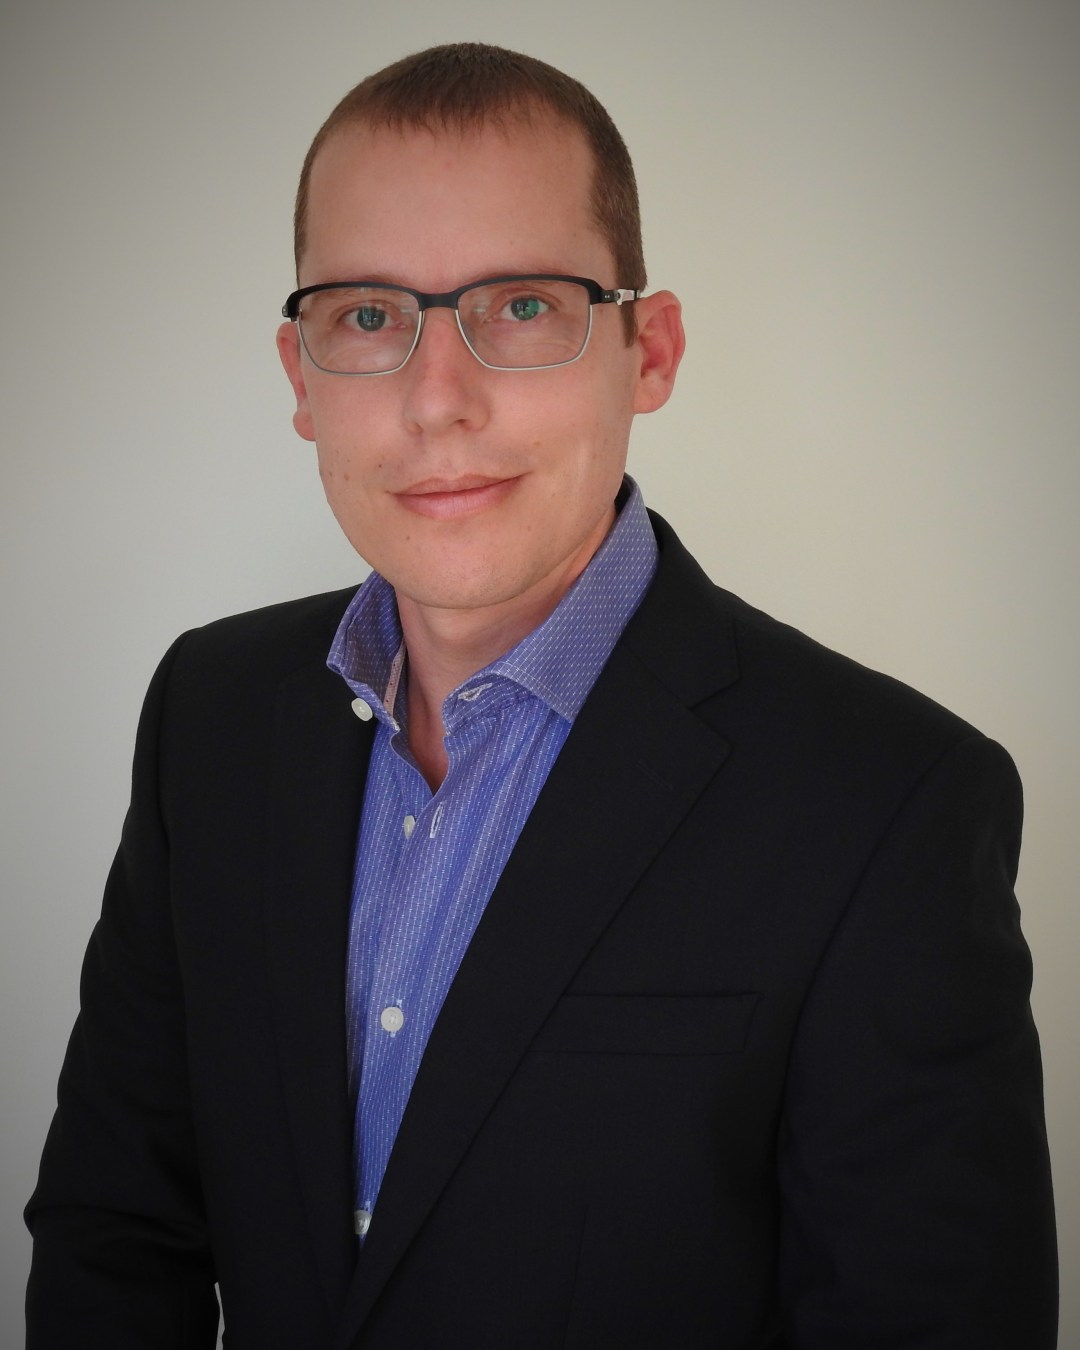 John King BIM Solutions profile photo